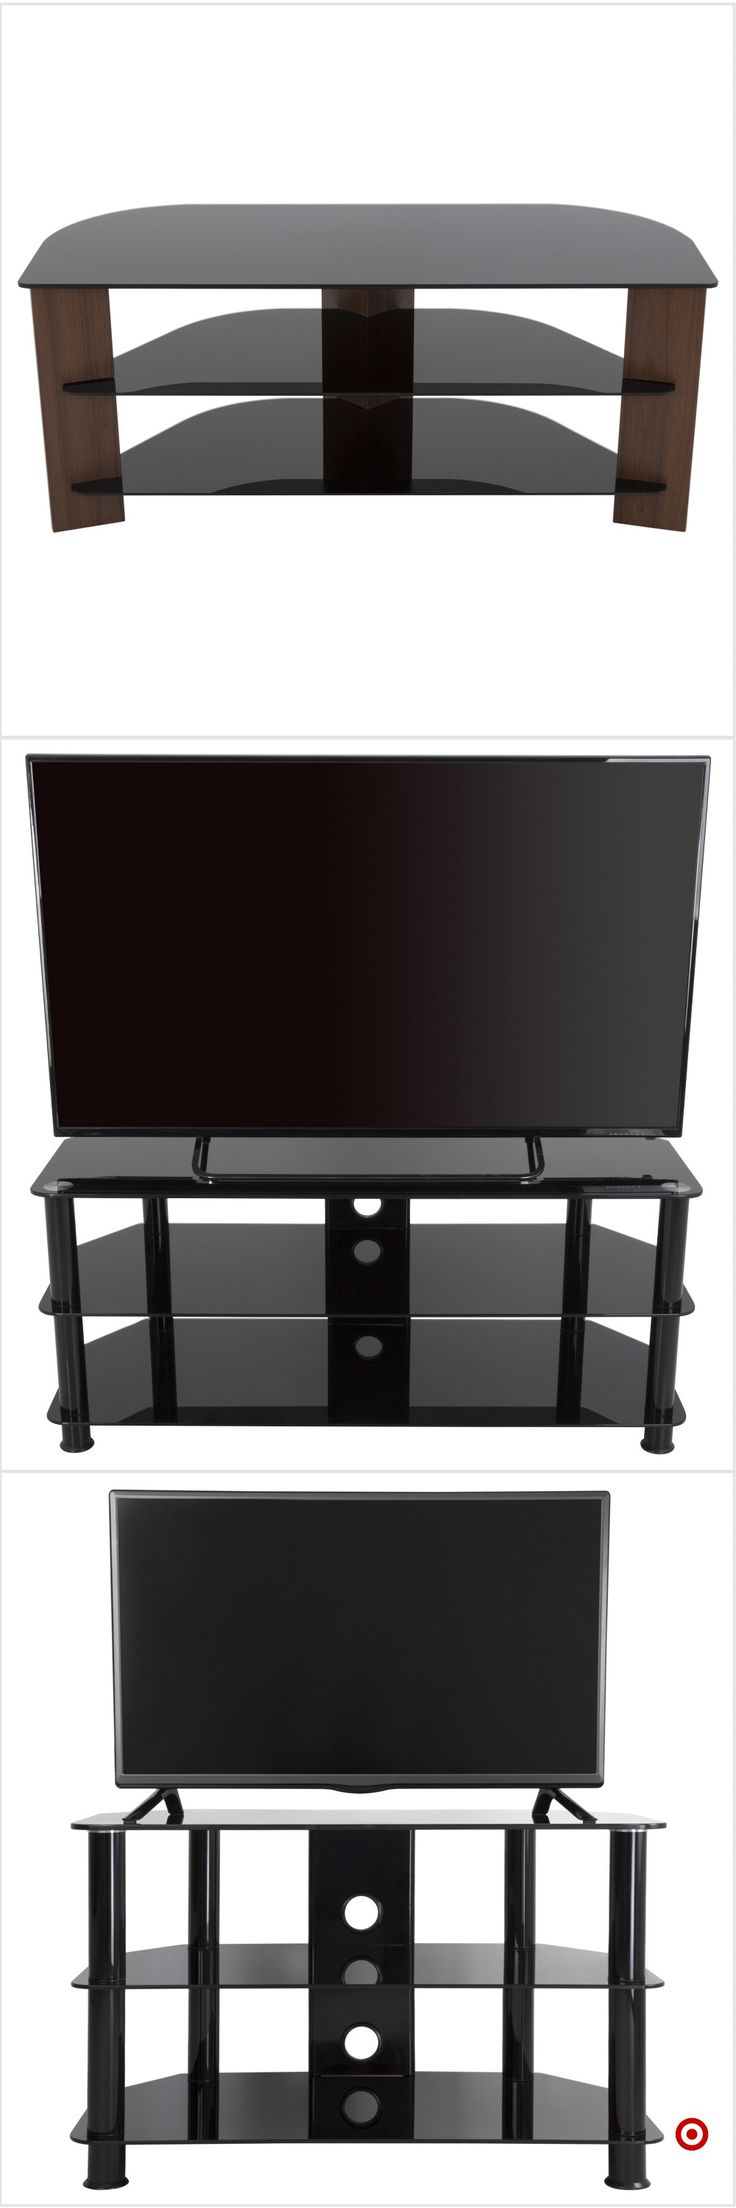 Tv television stands austin s furniture - Shop Target For Flat Panel Tv Stand You Will Love At Great Low Prices Free